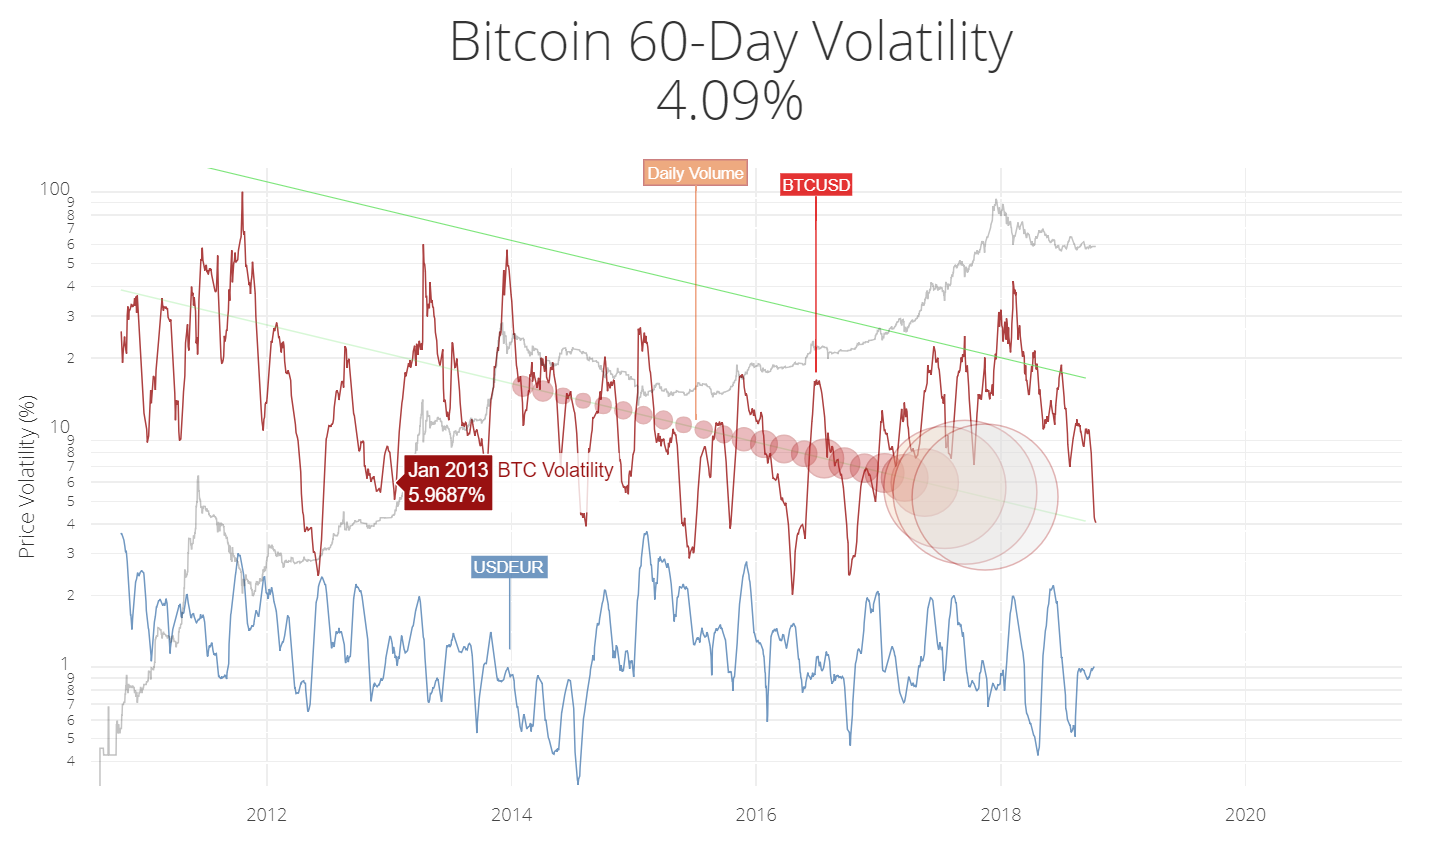 Bitcoin 60-day volatility